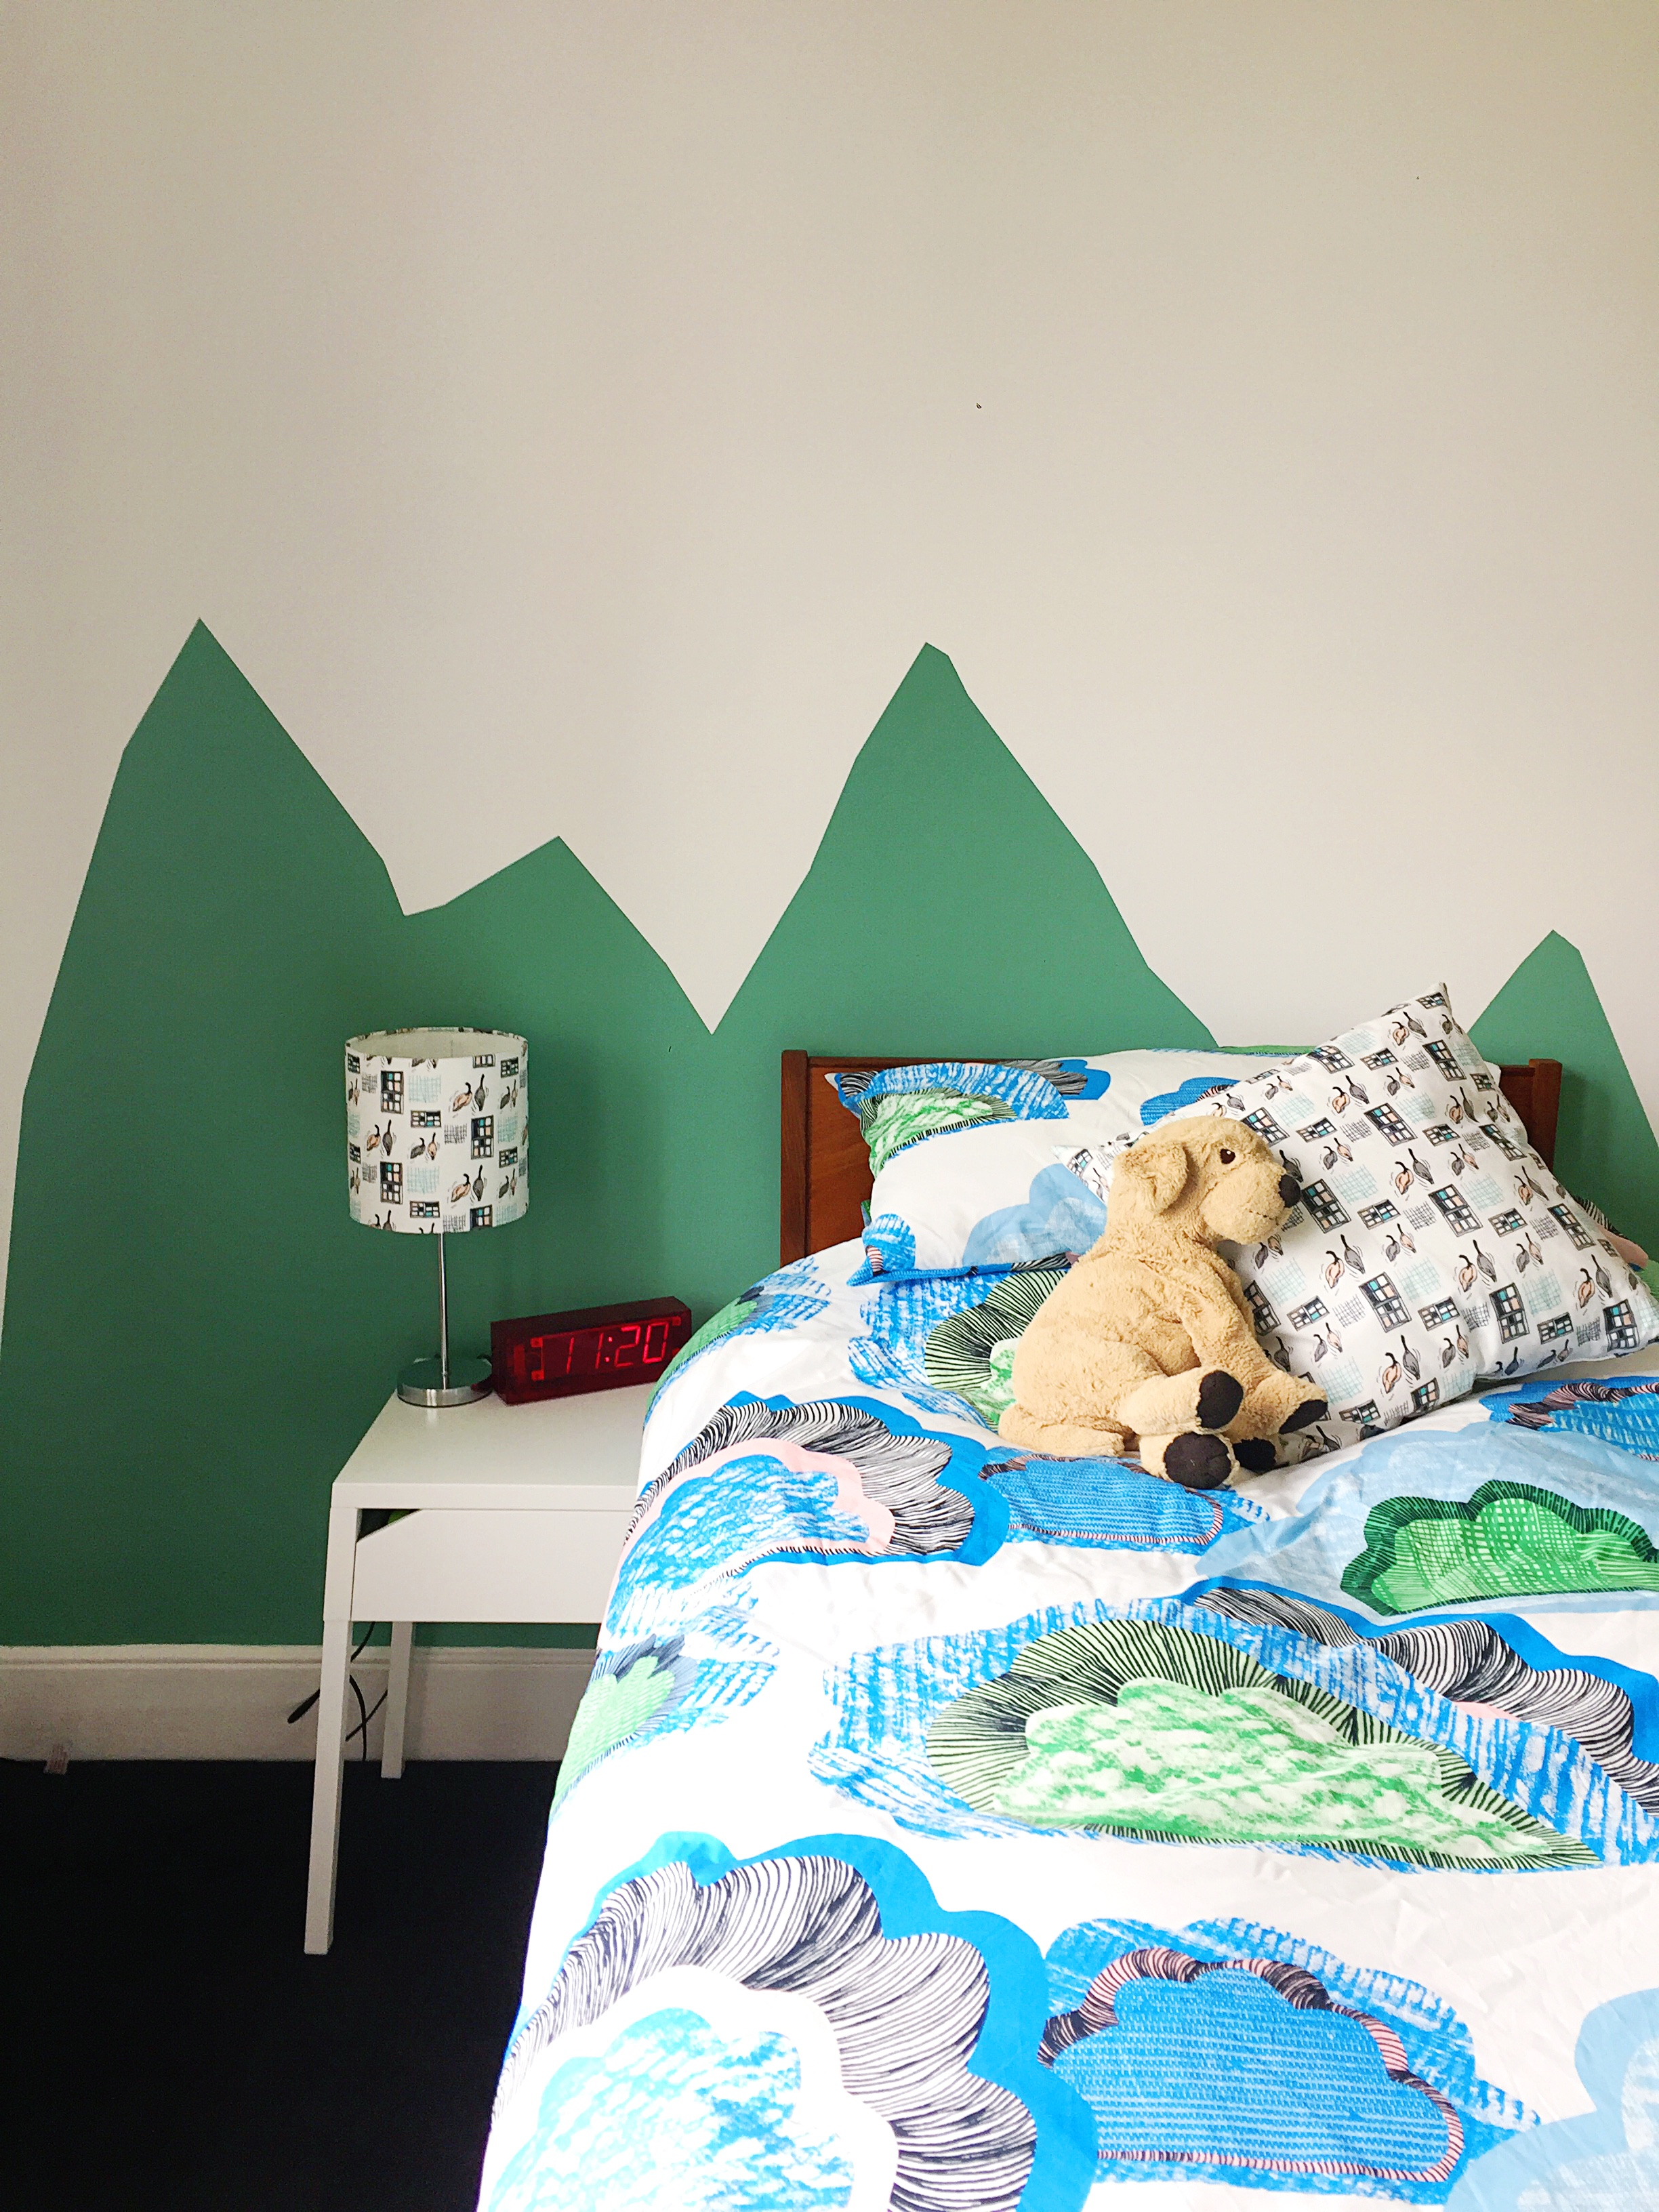 Cushion and lampshade by  me ! - Bedside table and bedding (and Doggy!) from  IKEA  - Clock and headboard are vintage